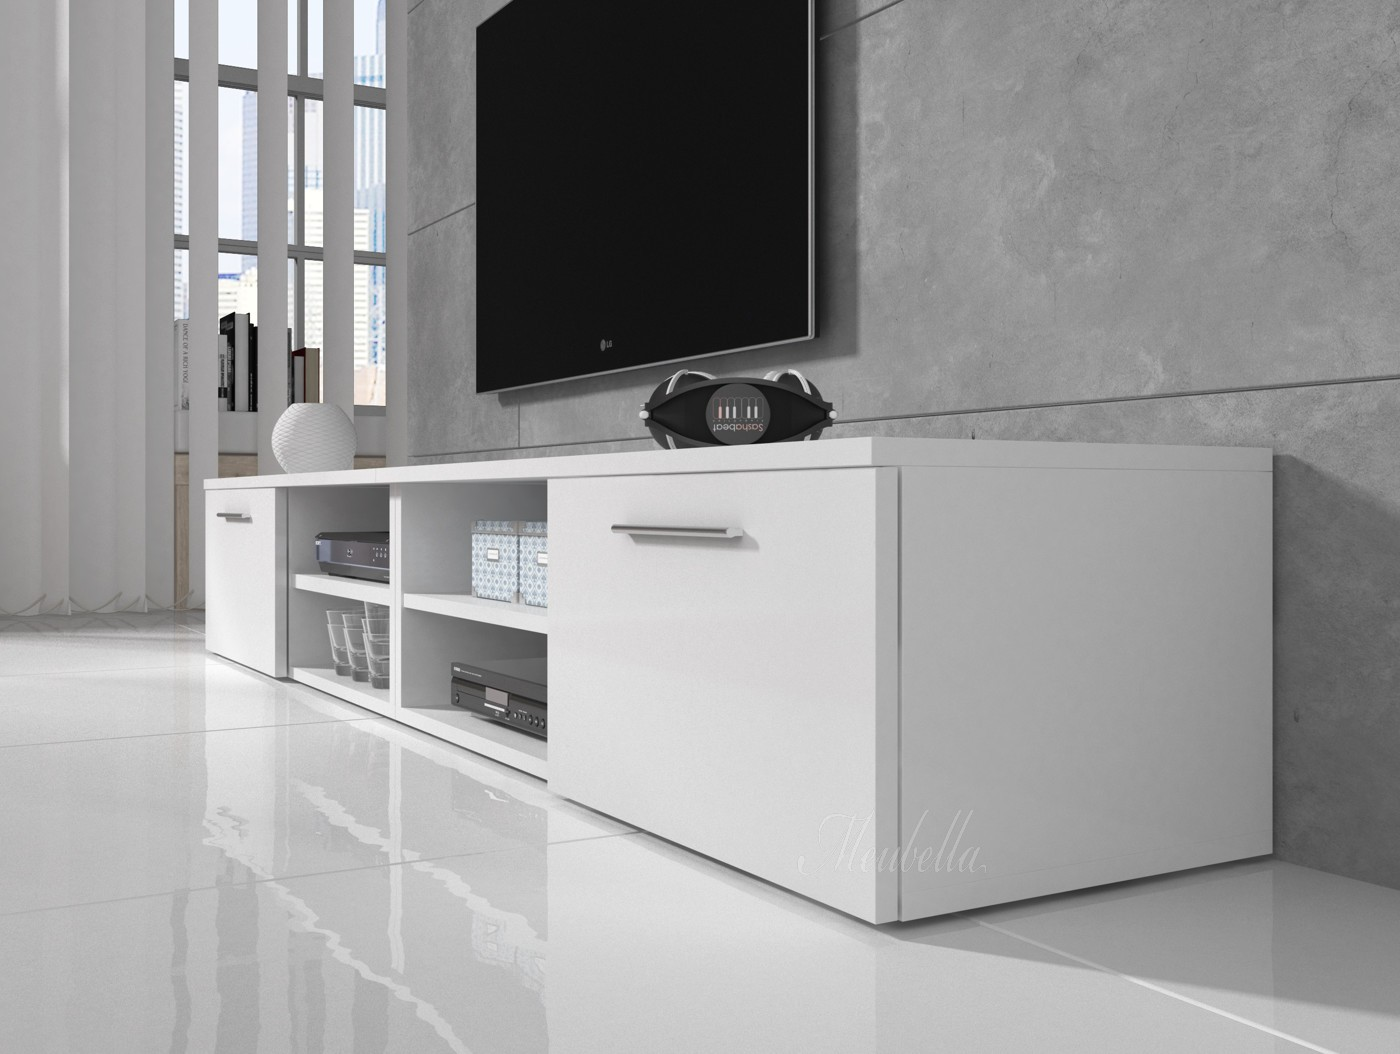 Tv meubel bash ii wit mat 240 cm meubella for Showroommodellen design meubels